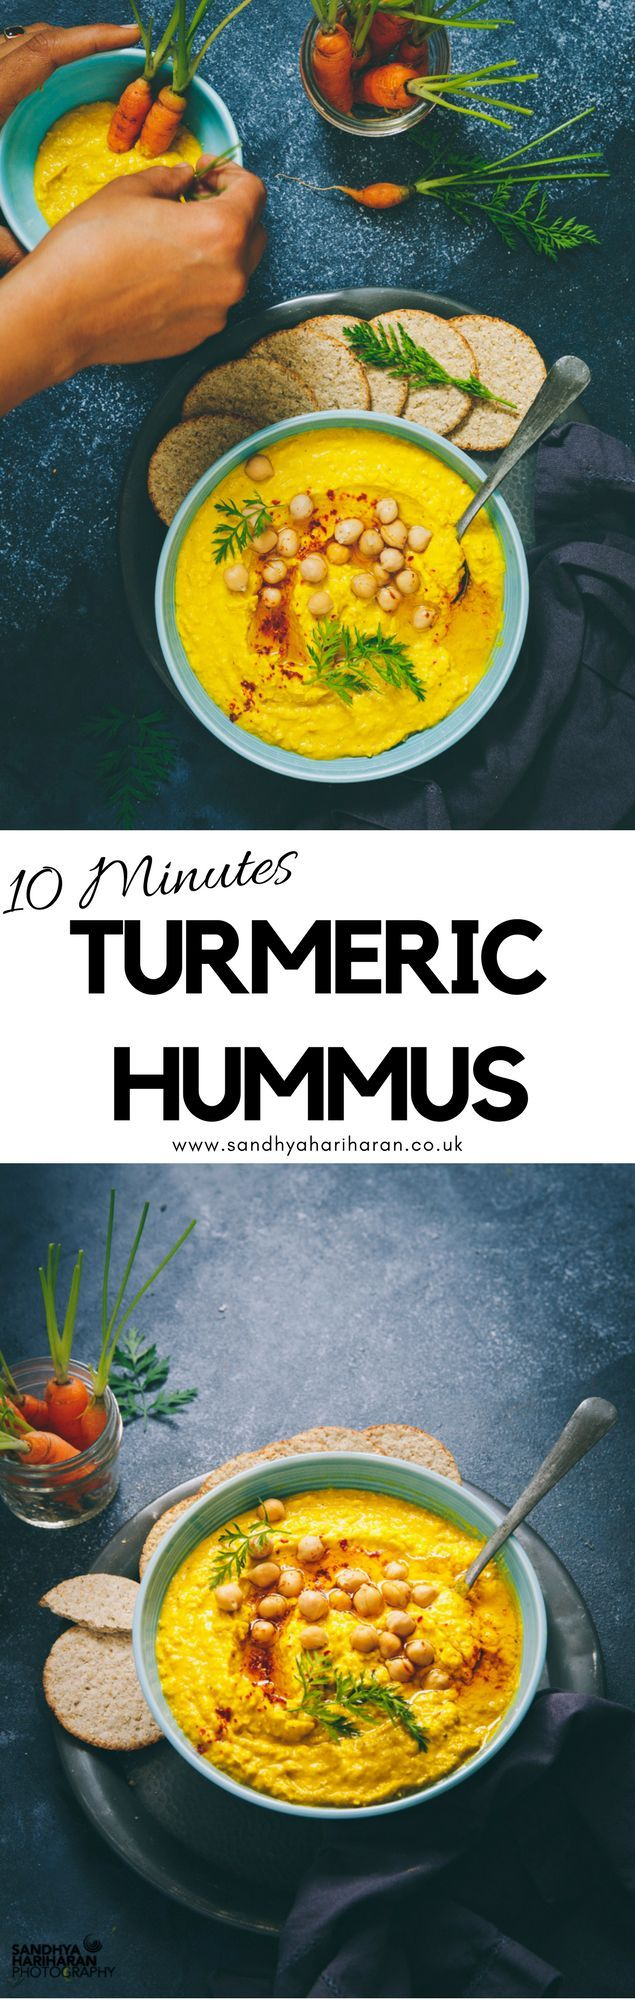 Yes, TURMERIC HUMMUS ! A very close cousin of Golden Turmeric Milk. And You have many many reasons to try them **It is super healthy **Yummy, **Filling, **Delicious and importantly with all the anti inflammatory properties. #turmeric #hummus #turmerichummus #antiinflammatory  #dip